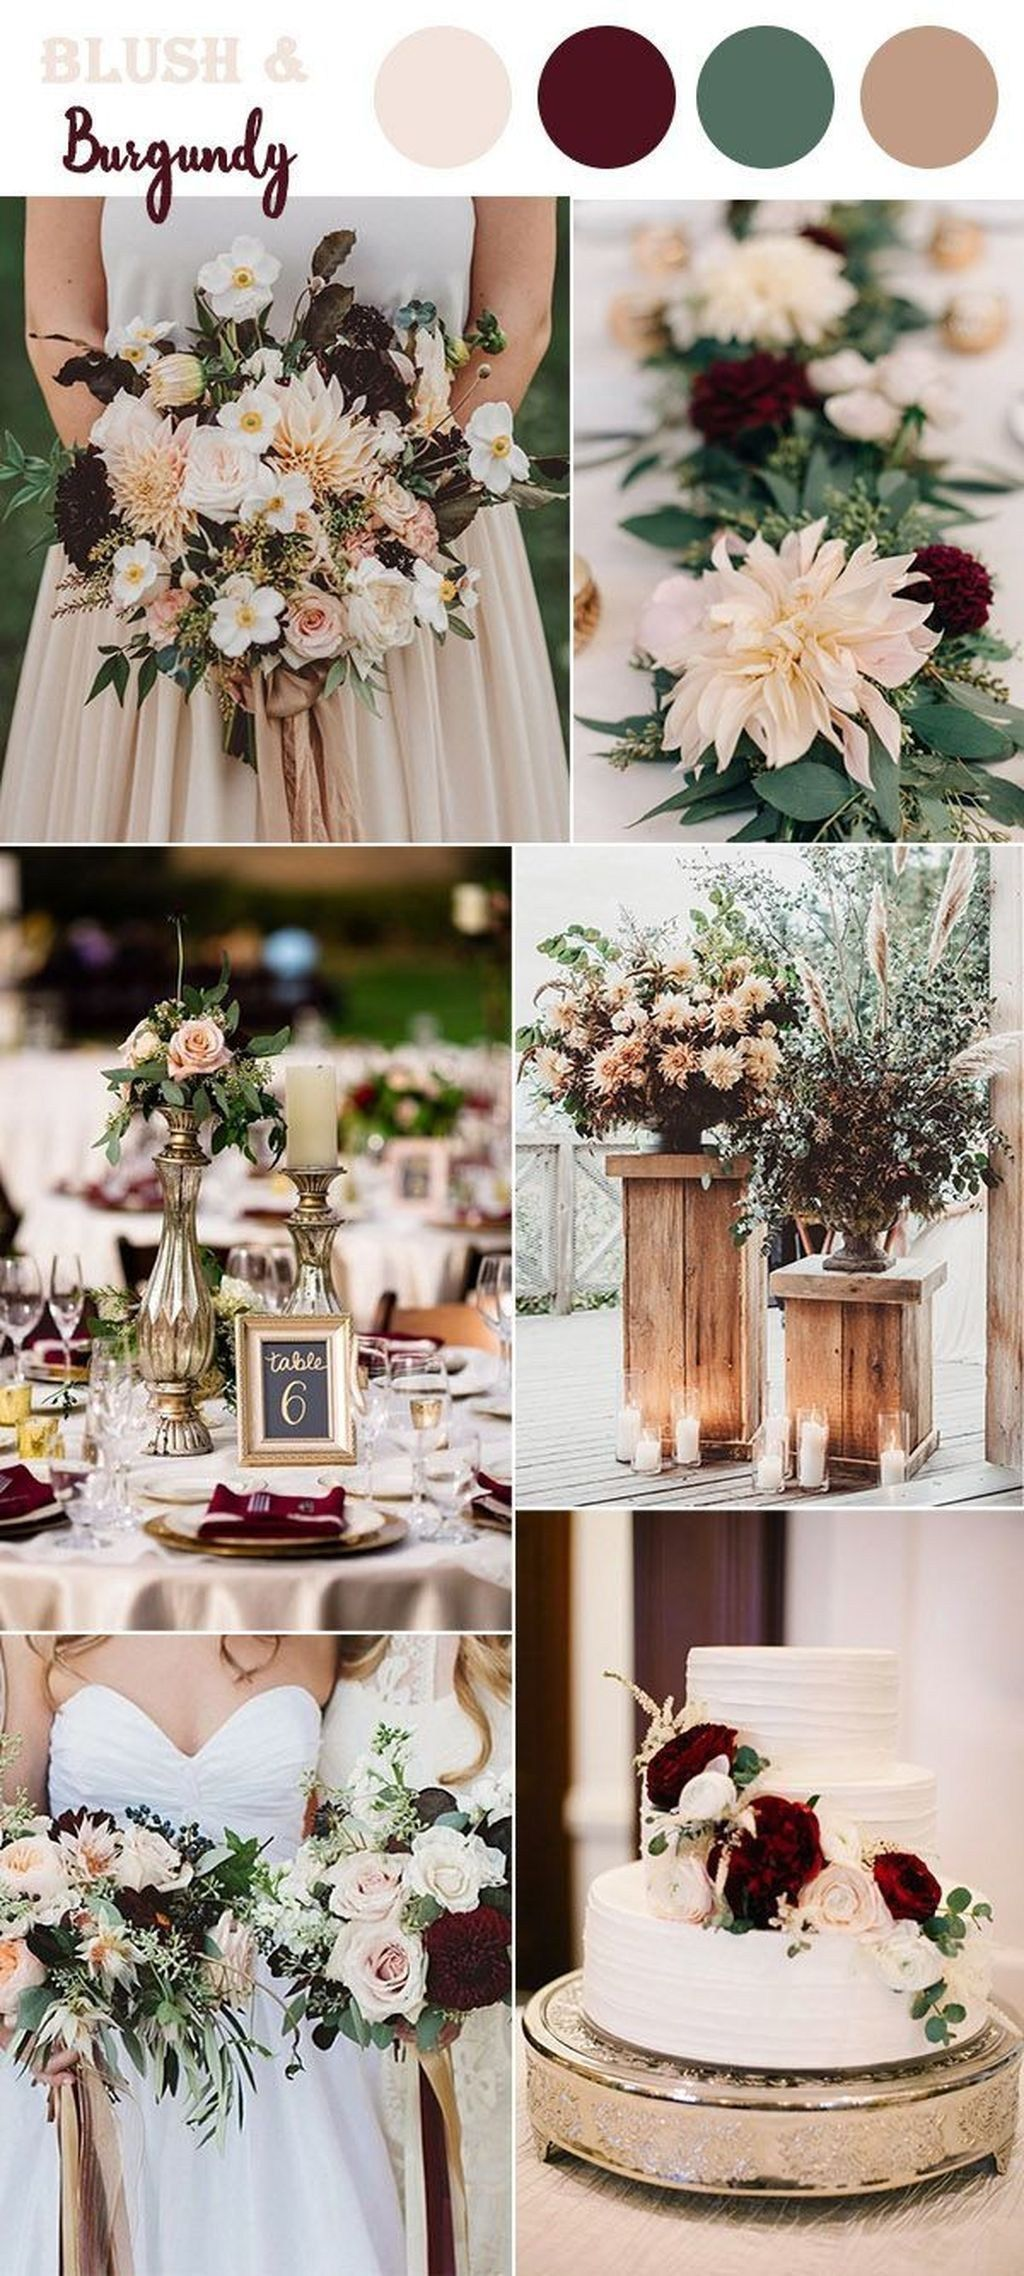 I like the top right floral and greens table runner on the white